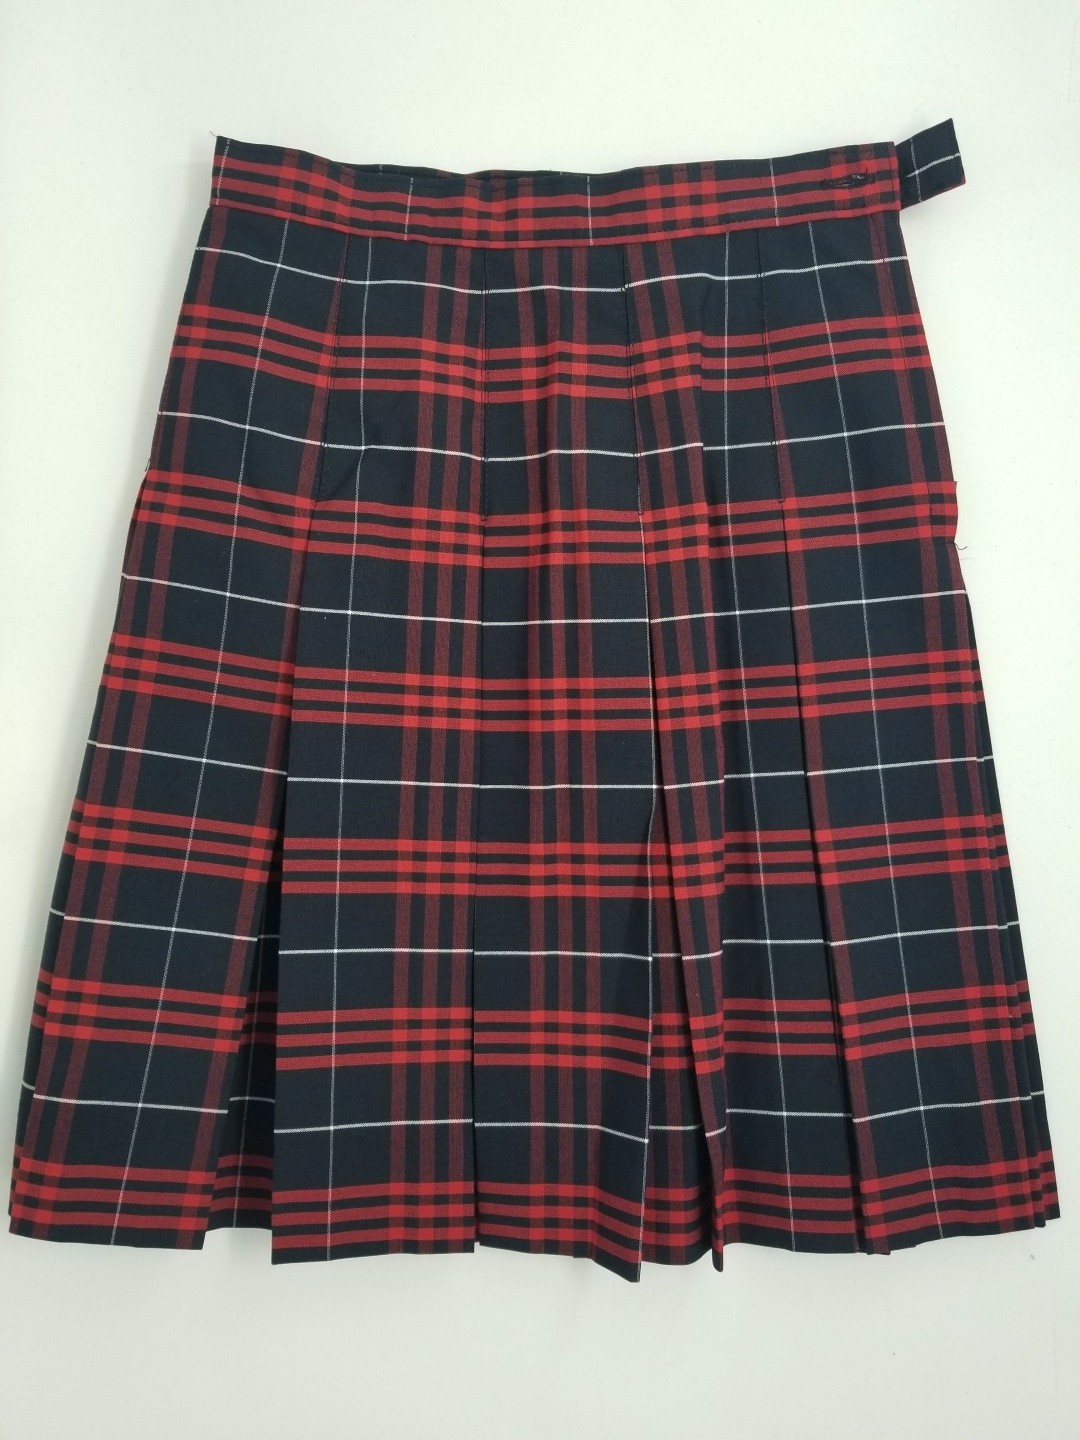 Stitch Down Pleat Skirt- Style 11